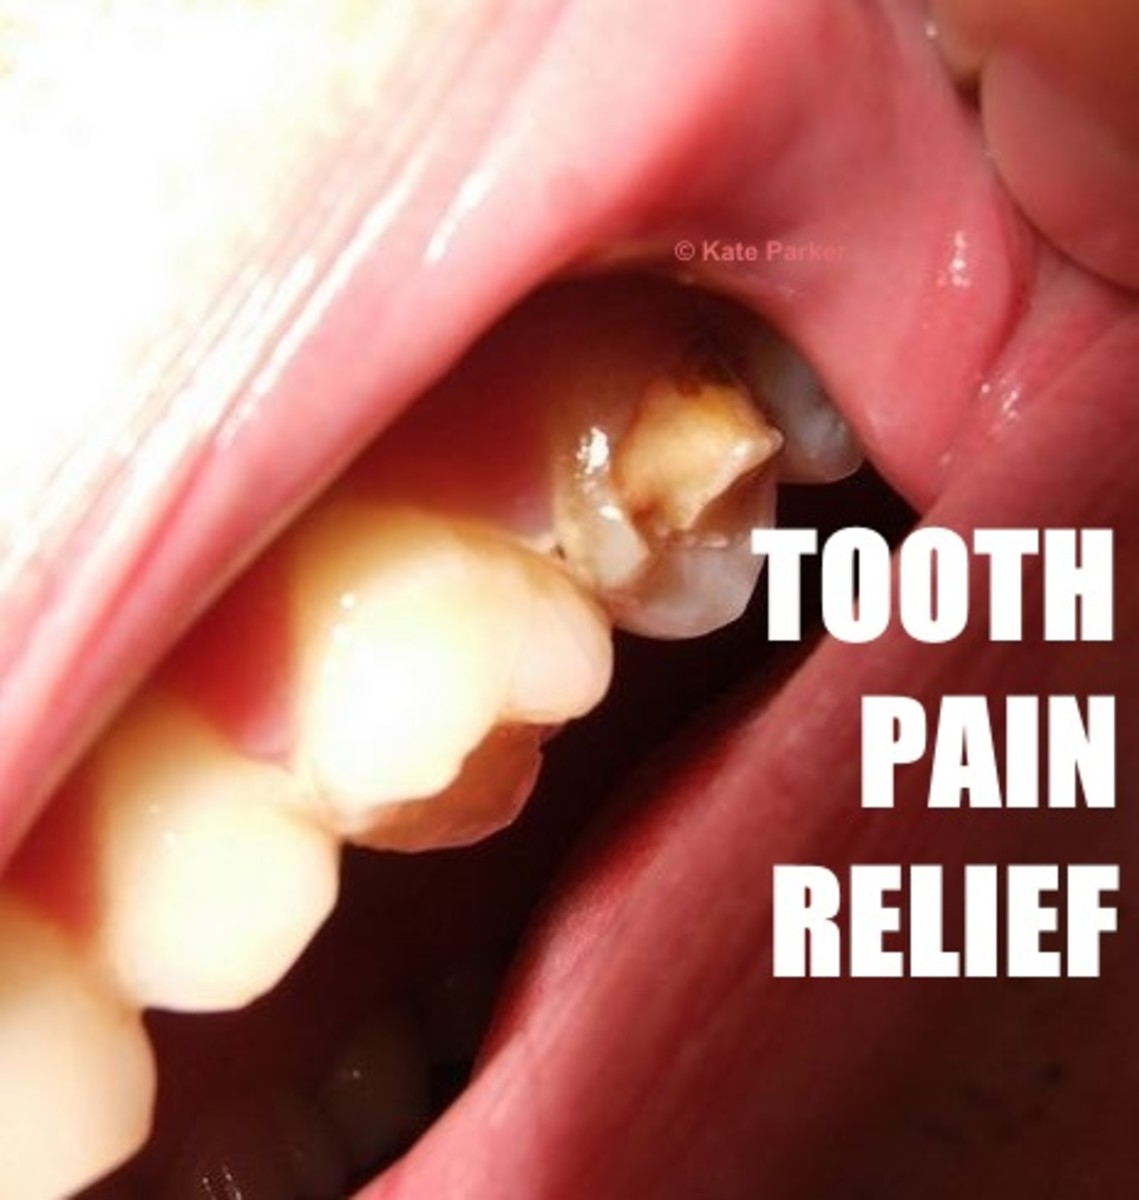 Tooth pain ranges from mildly irritating to horrendously debilitating